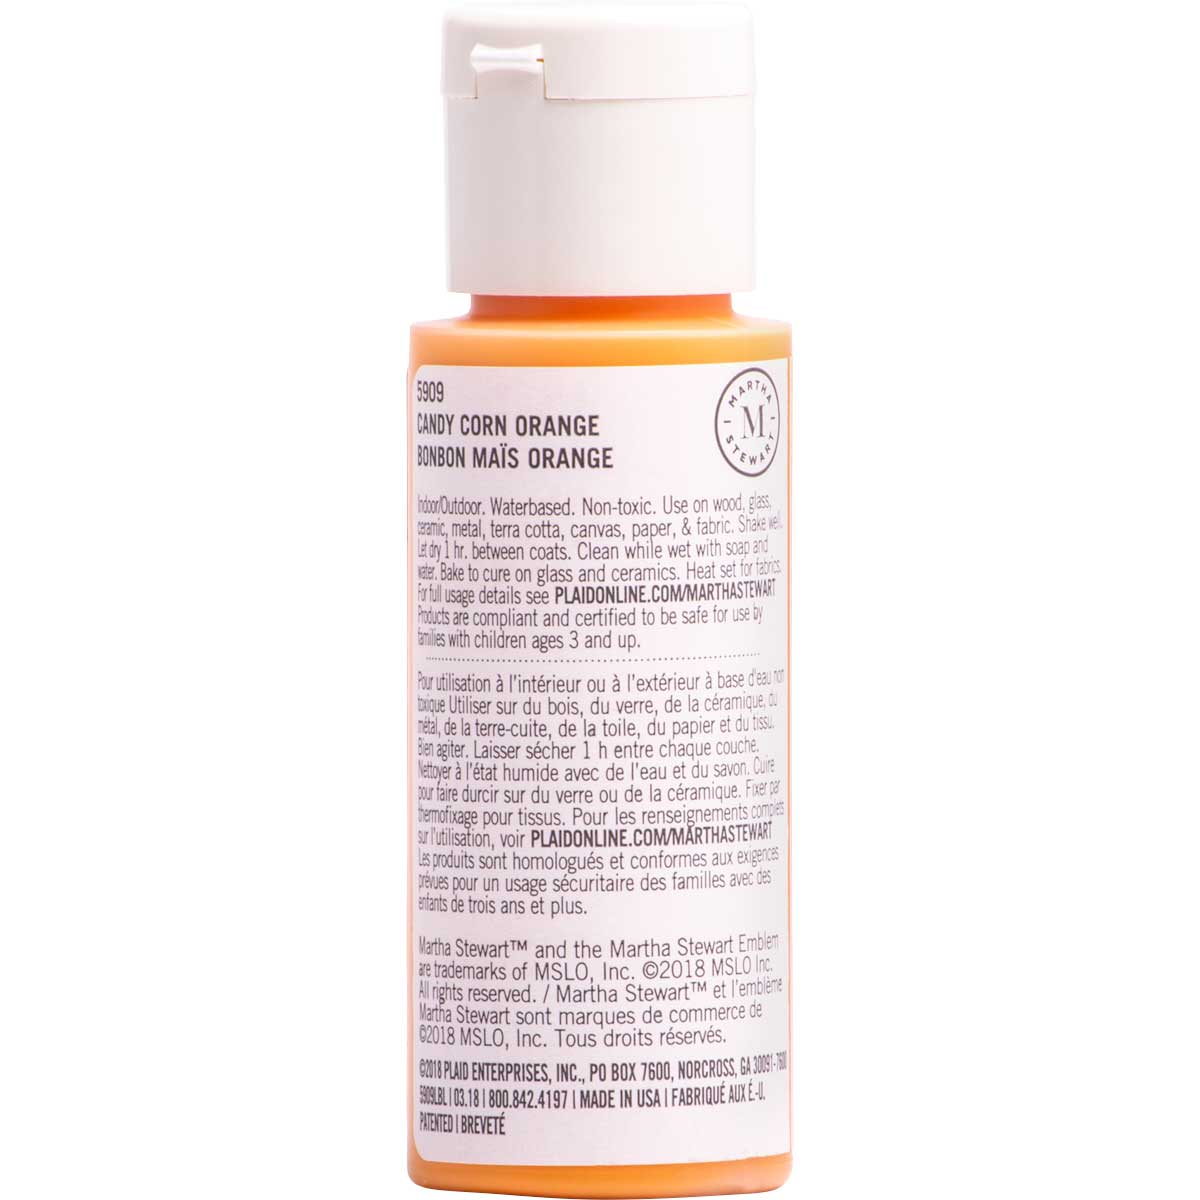 Martha Stewart ® Multi-Surface Satin Acrylic Craft Paint CPSIA - Candy Corn Orange, 2 oz. - 5909